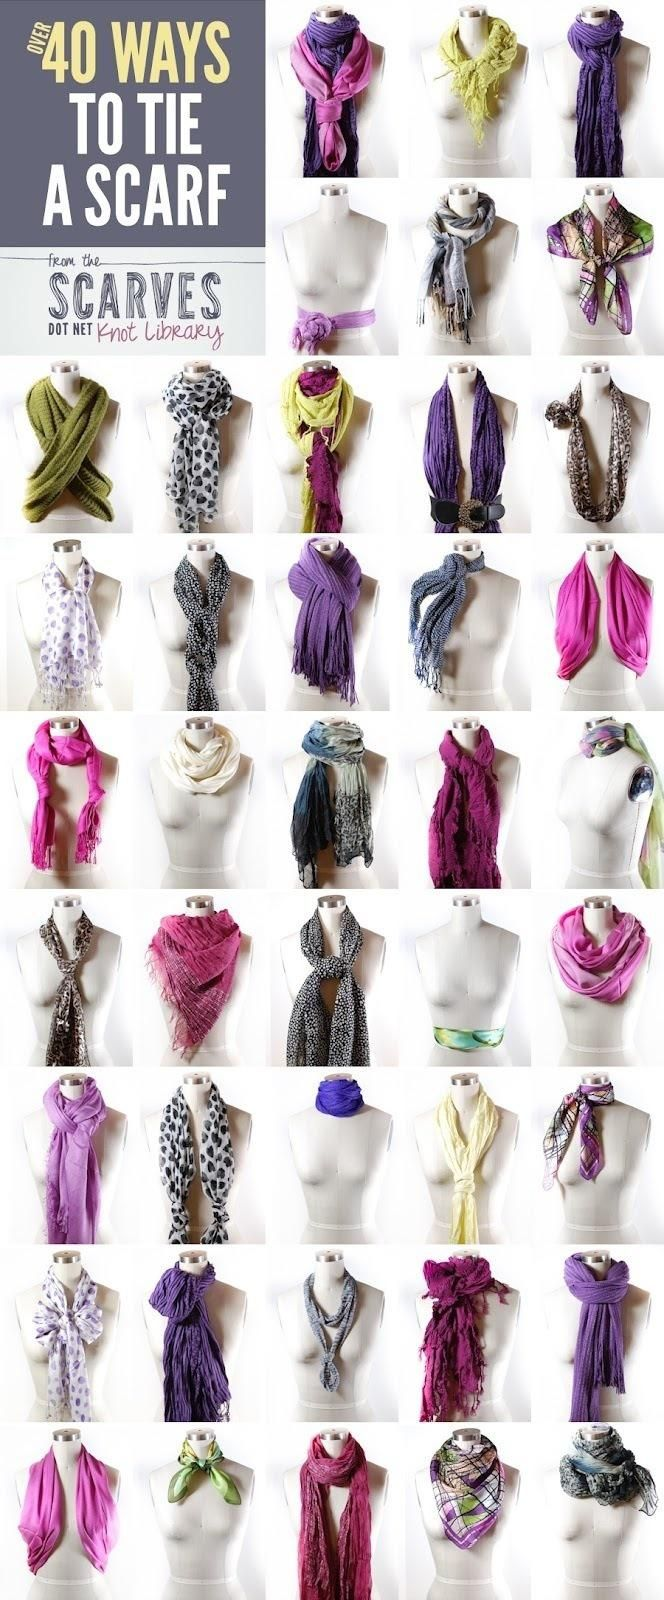 40 ways to tie a scarf. Find more dresses and women's fashions at www.aestheticofficial.com